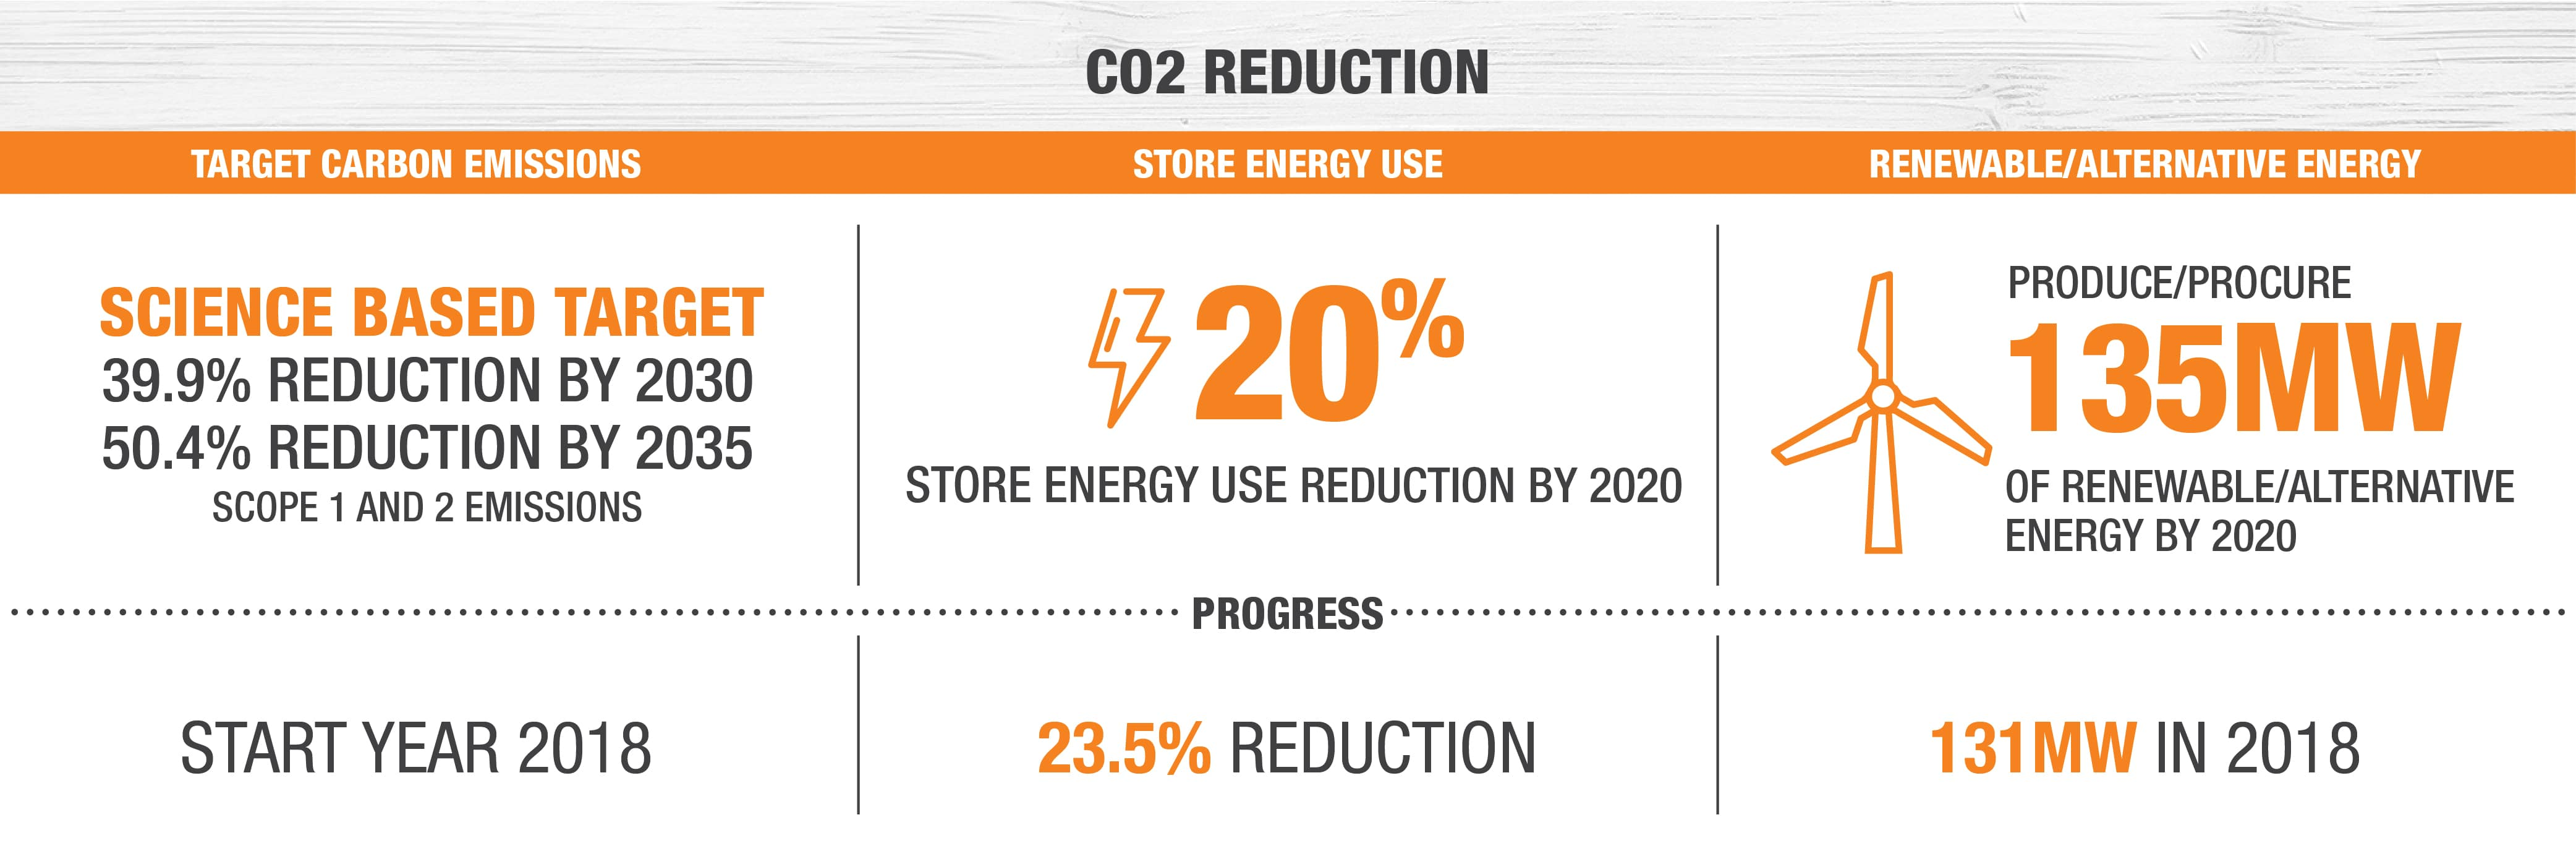 CO2 Reduction - Target Emissions: Science based target - 39.9% by 2030. Store Energy Use: 20% Store Energy Use Reduction by 2020. Renewable/Alternative Energy: Produce/Procure 135 MW of renewable energy by 2020